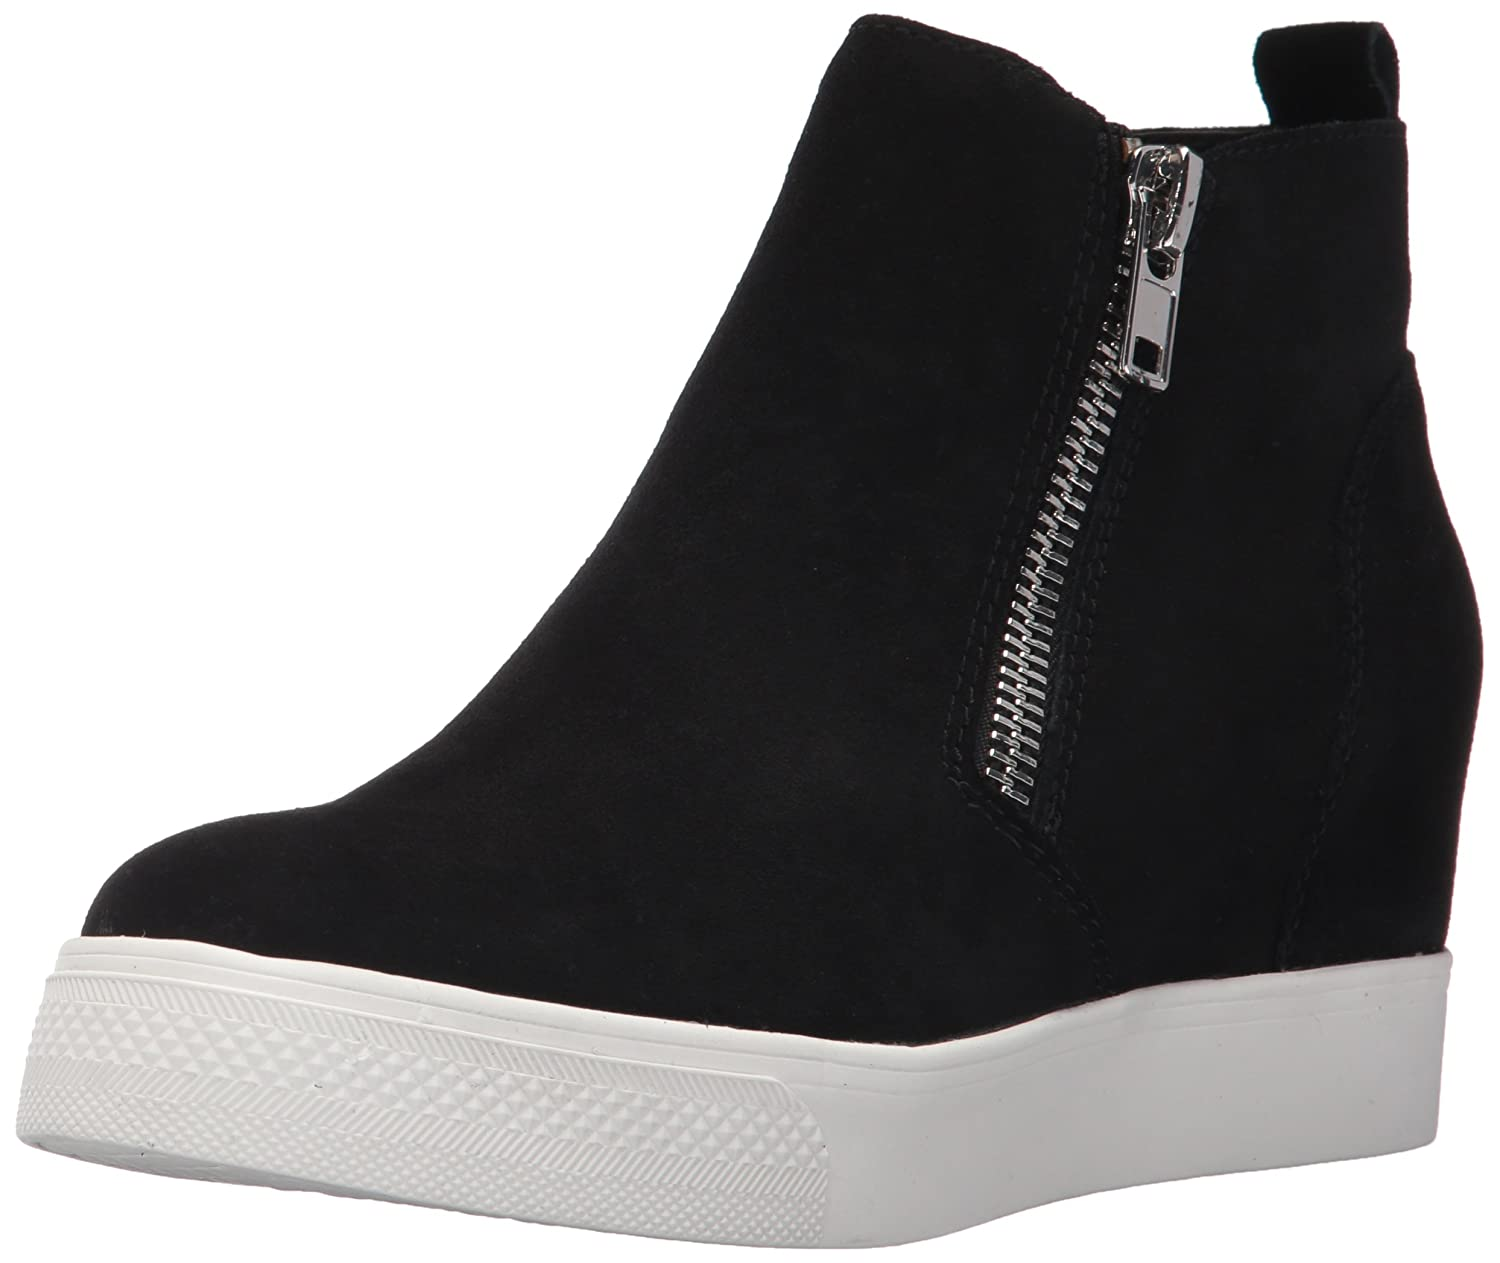 bb089411715 Steve Madden Women s Wedgie Sneaker  Buy Online at Low Prices in India -  Amazon.in